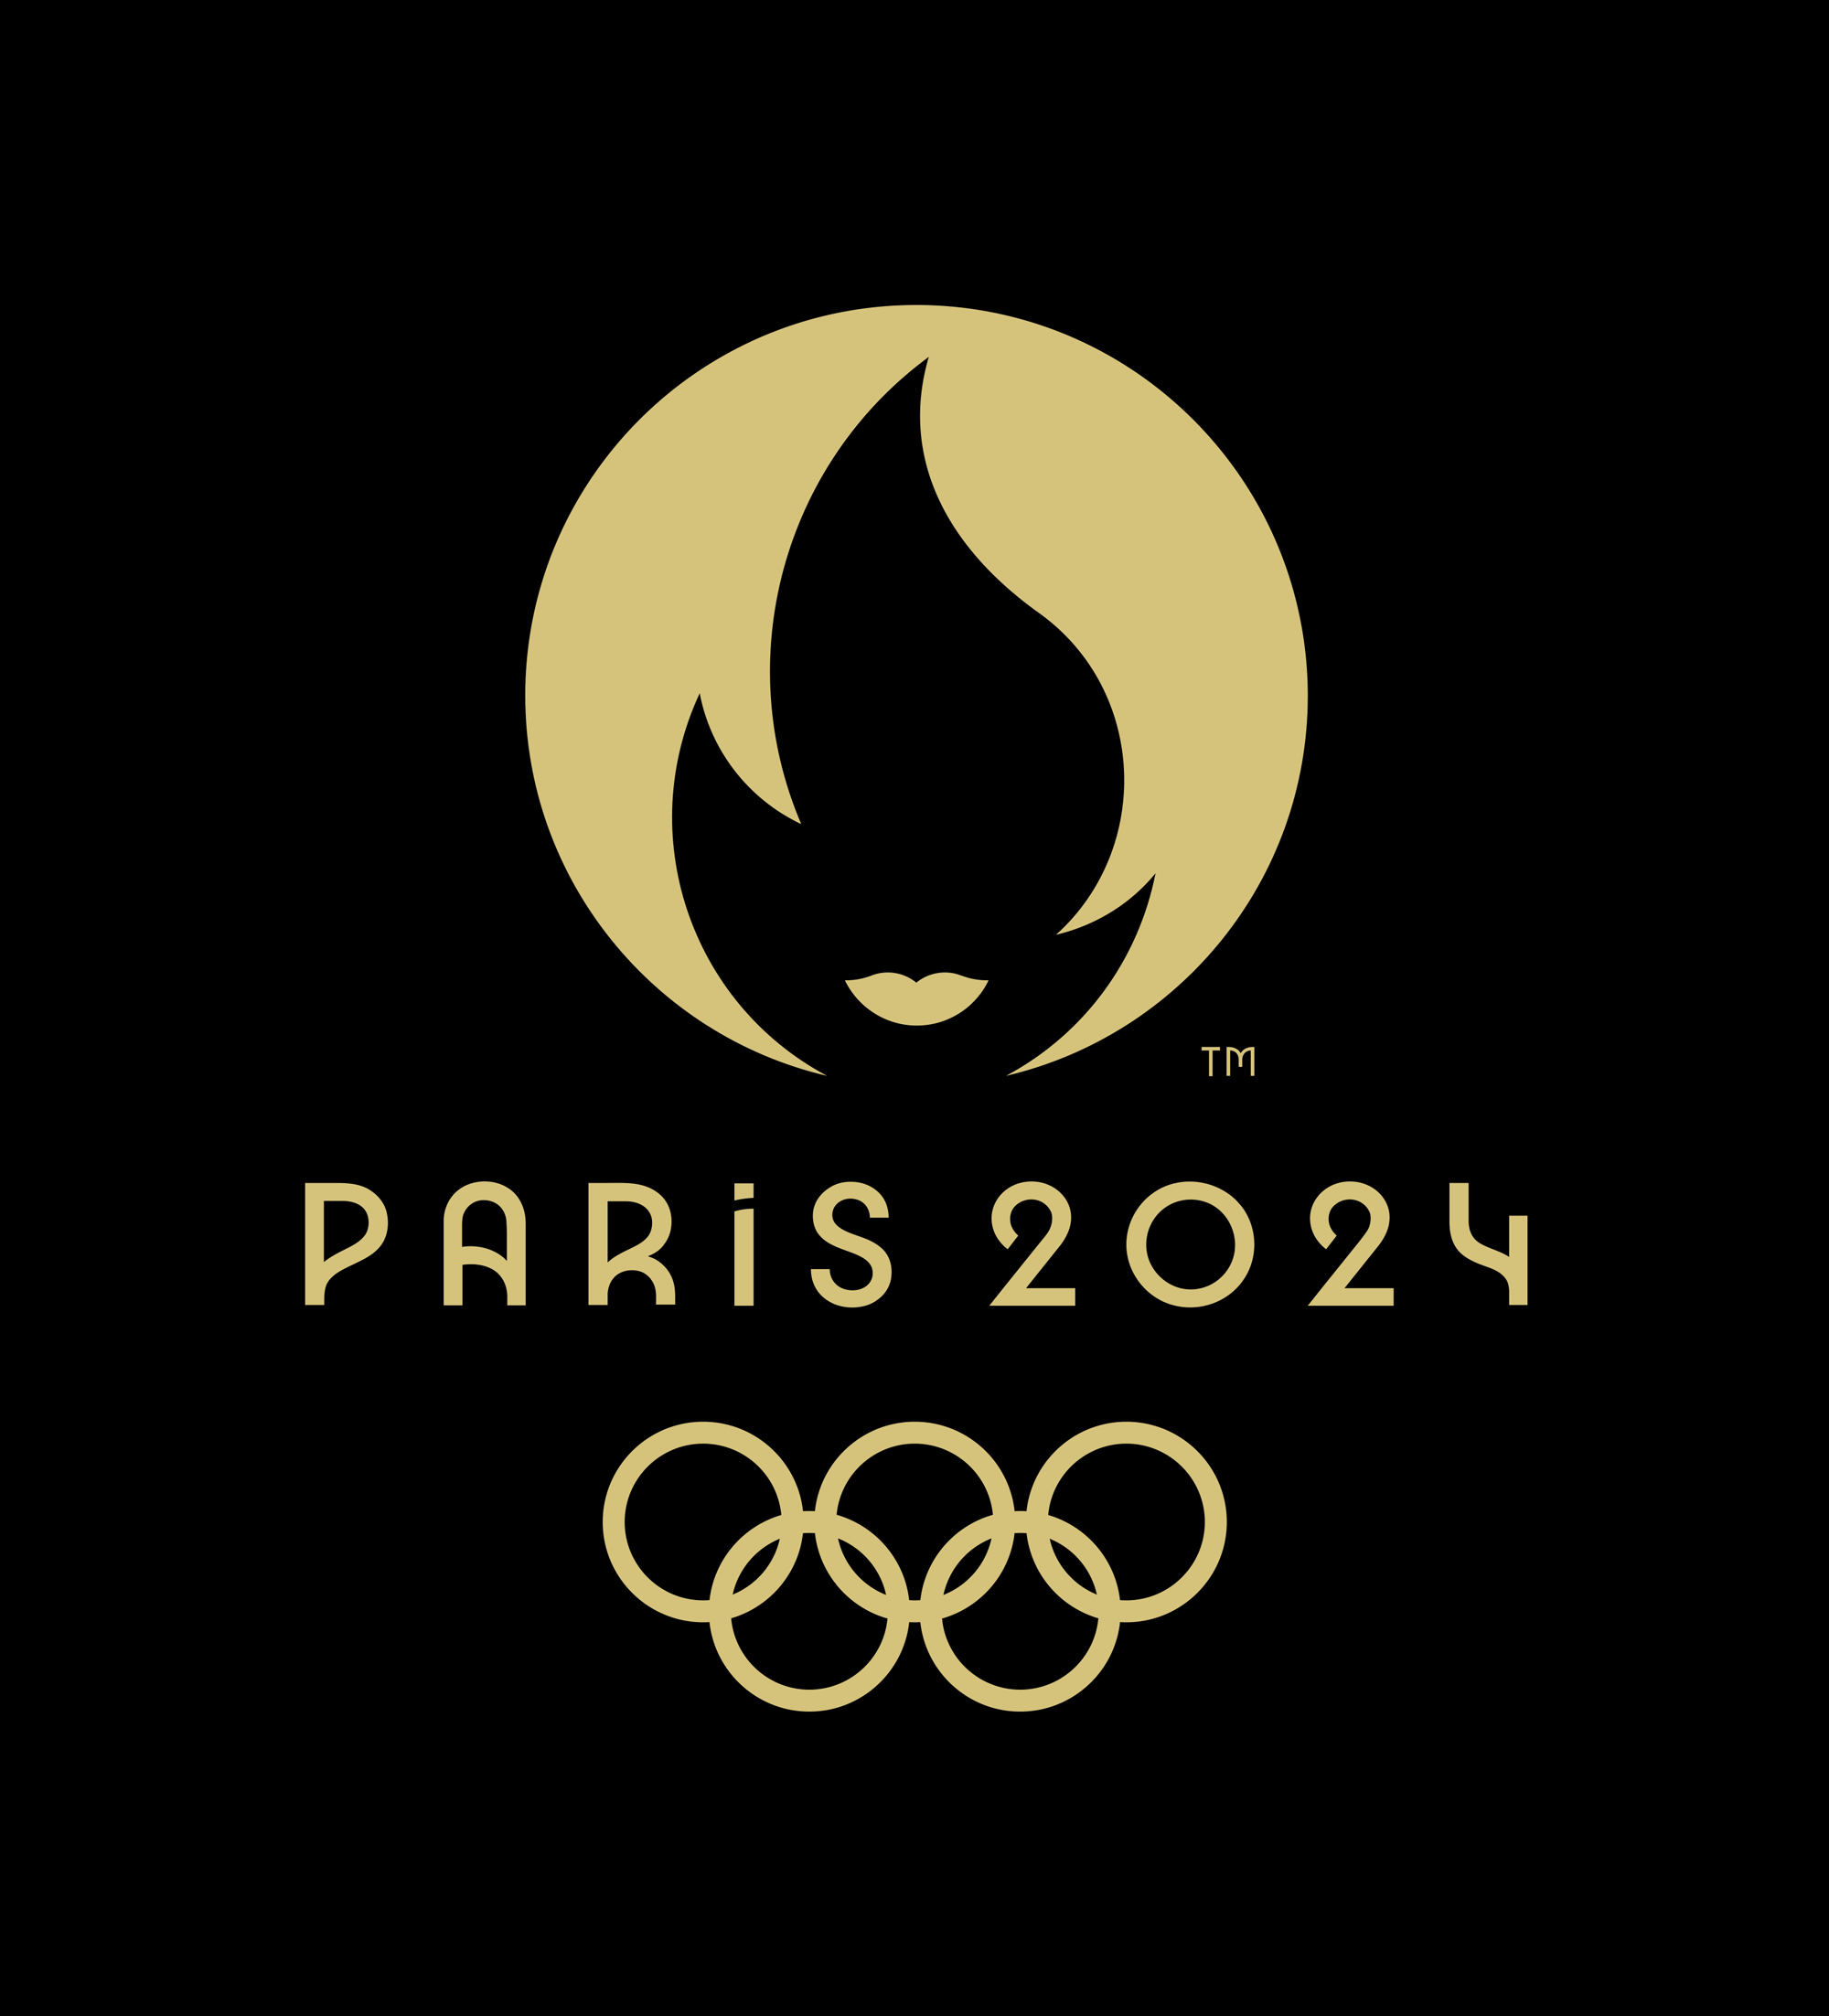 New Emblem for 2024 Summer Olympics by Royalties Ecobranding